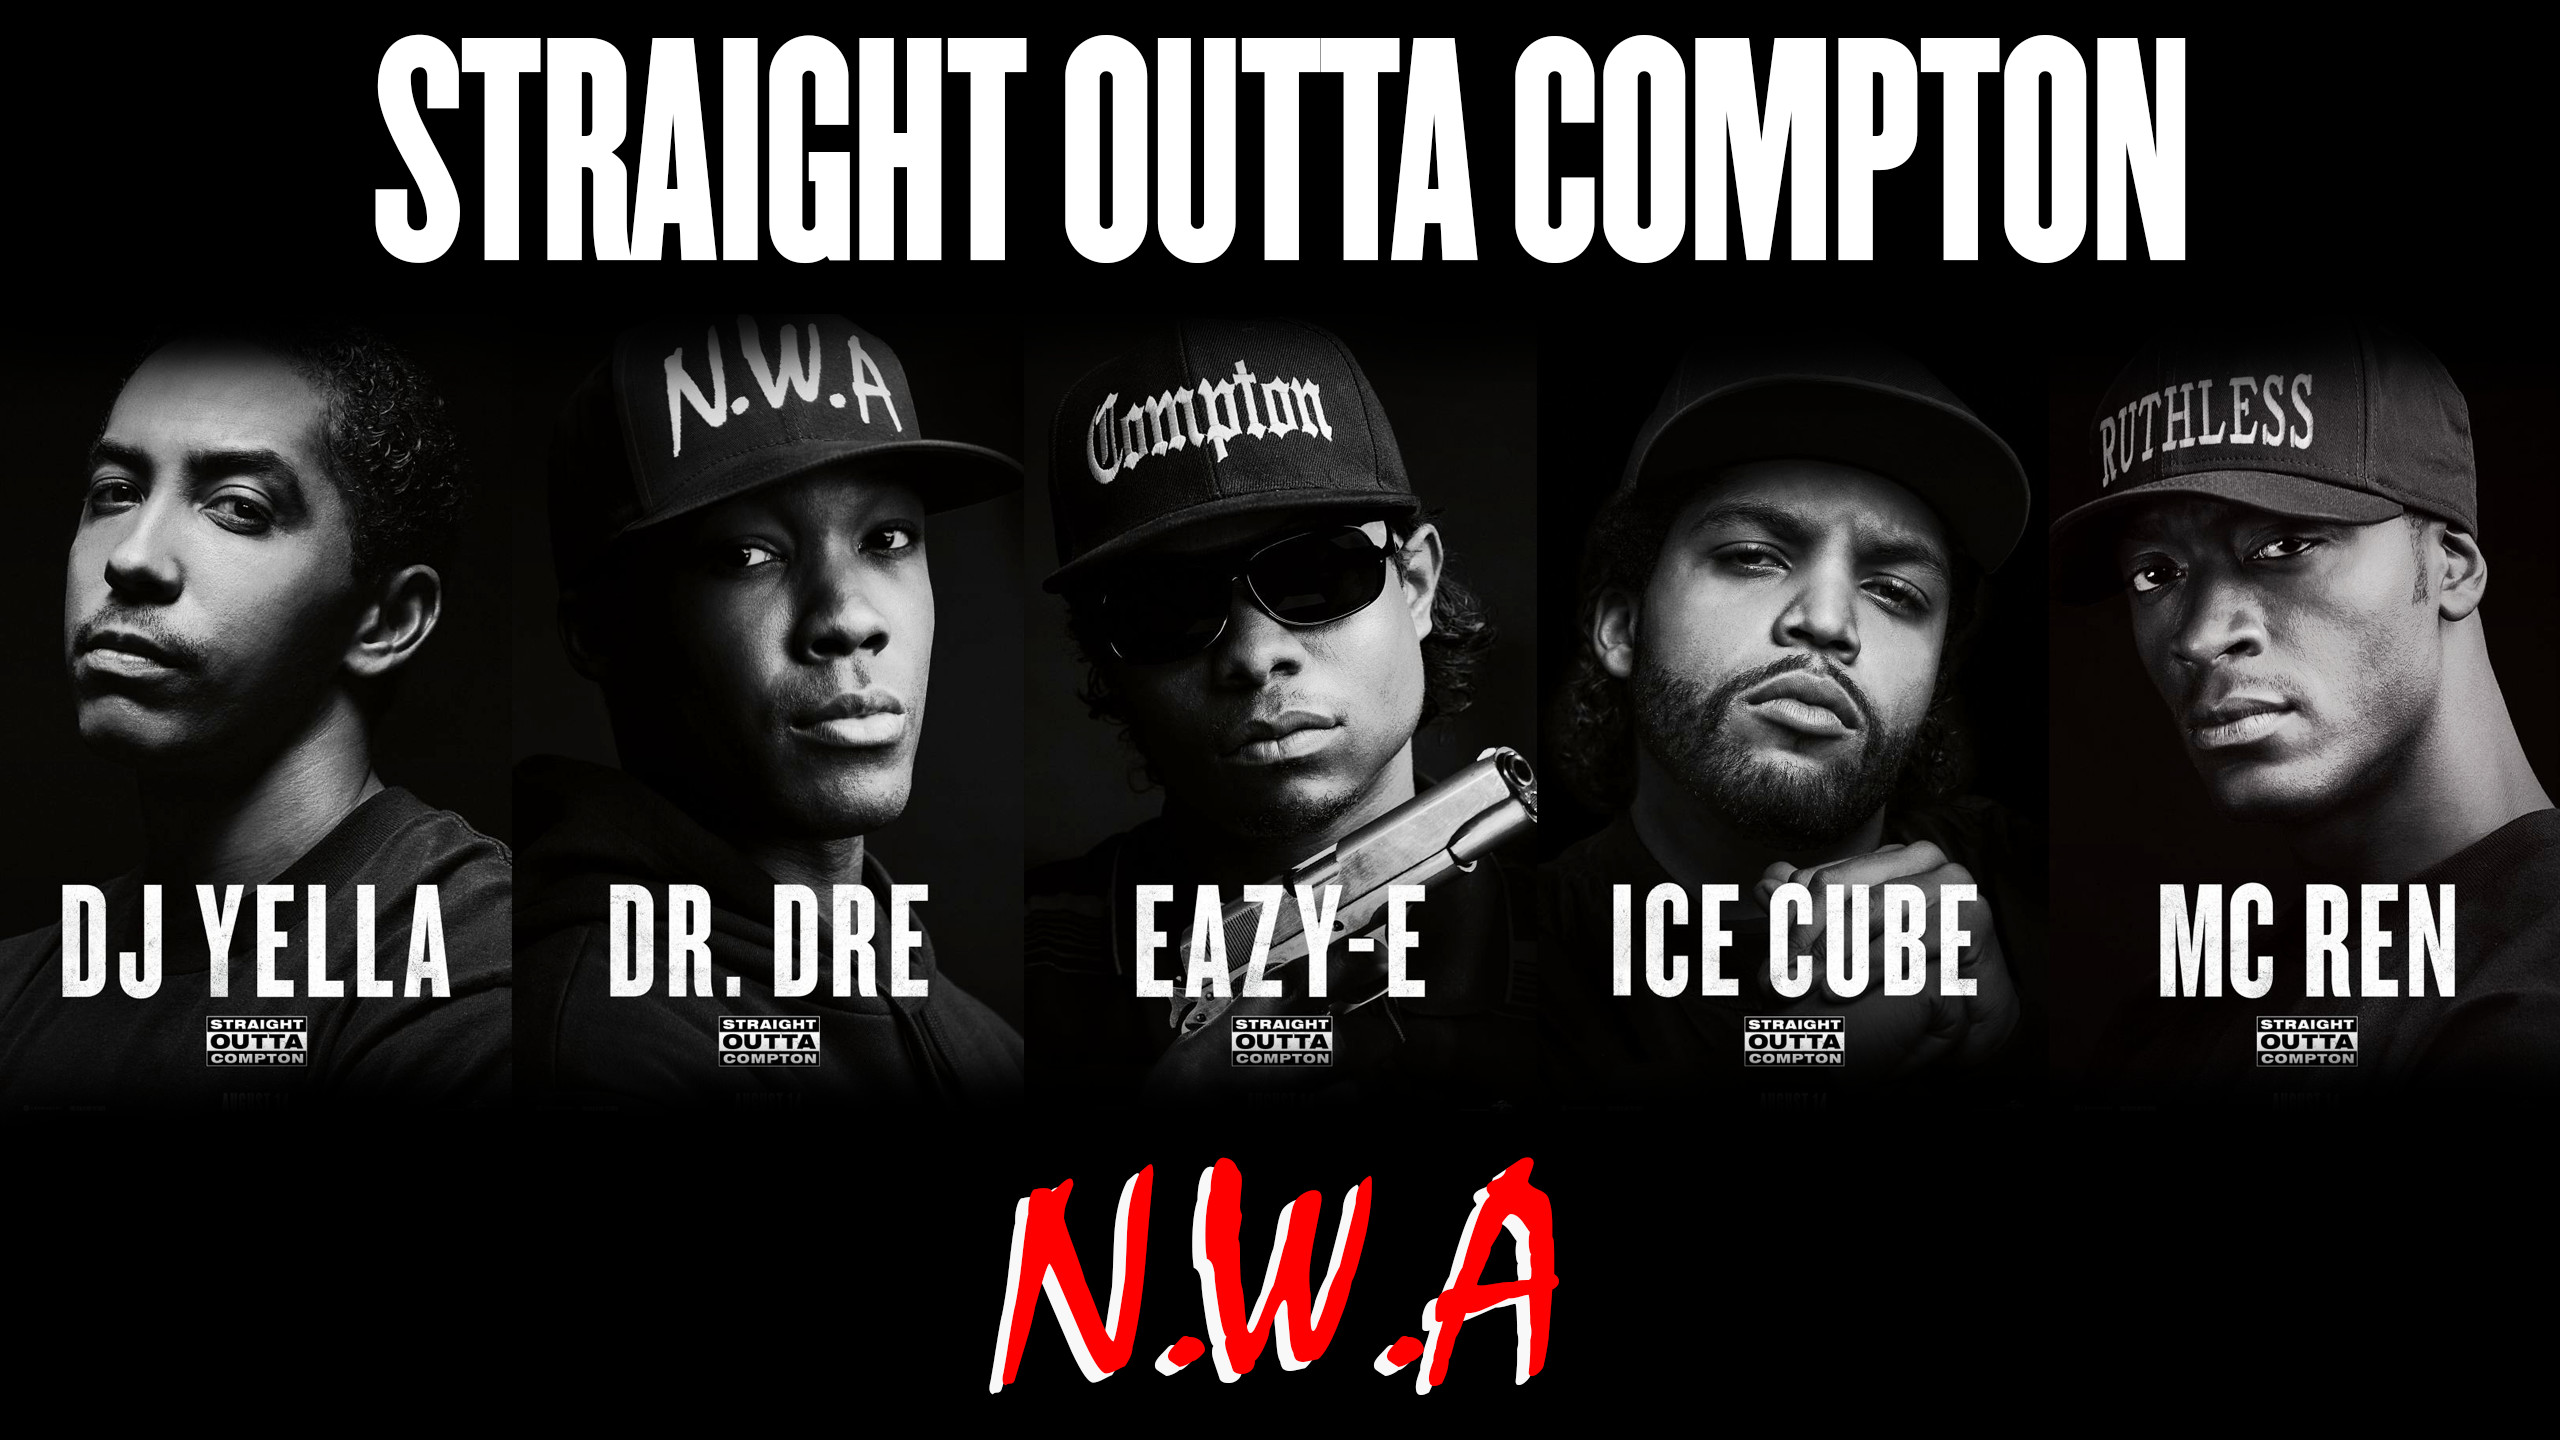 NWA Wallpaper (1440p) …